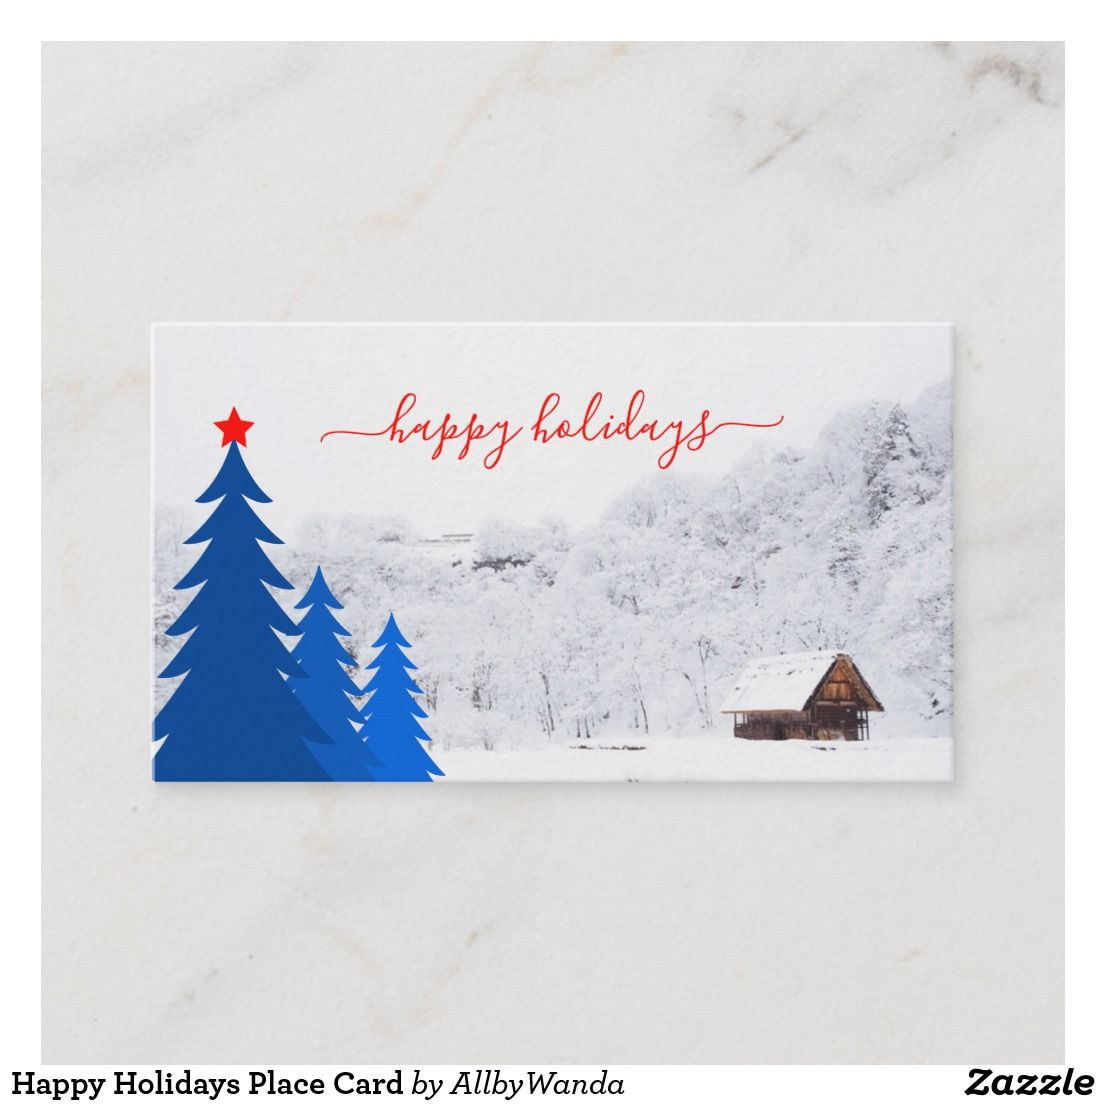 Happy holidays place card holiday place